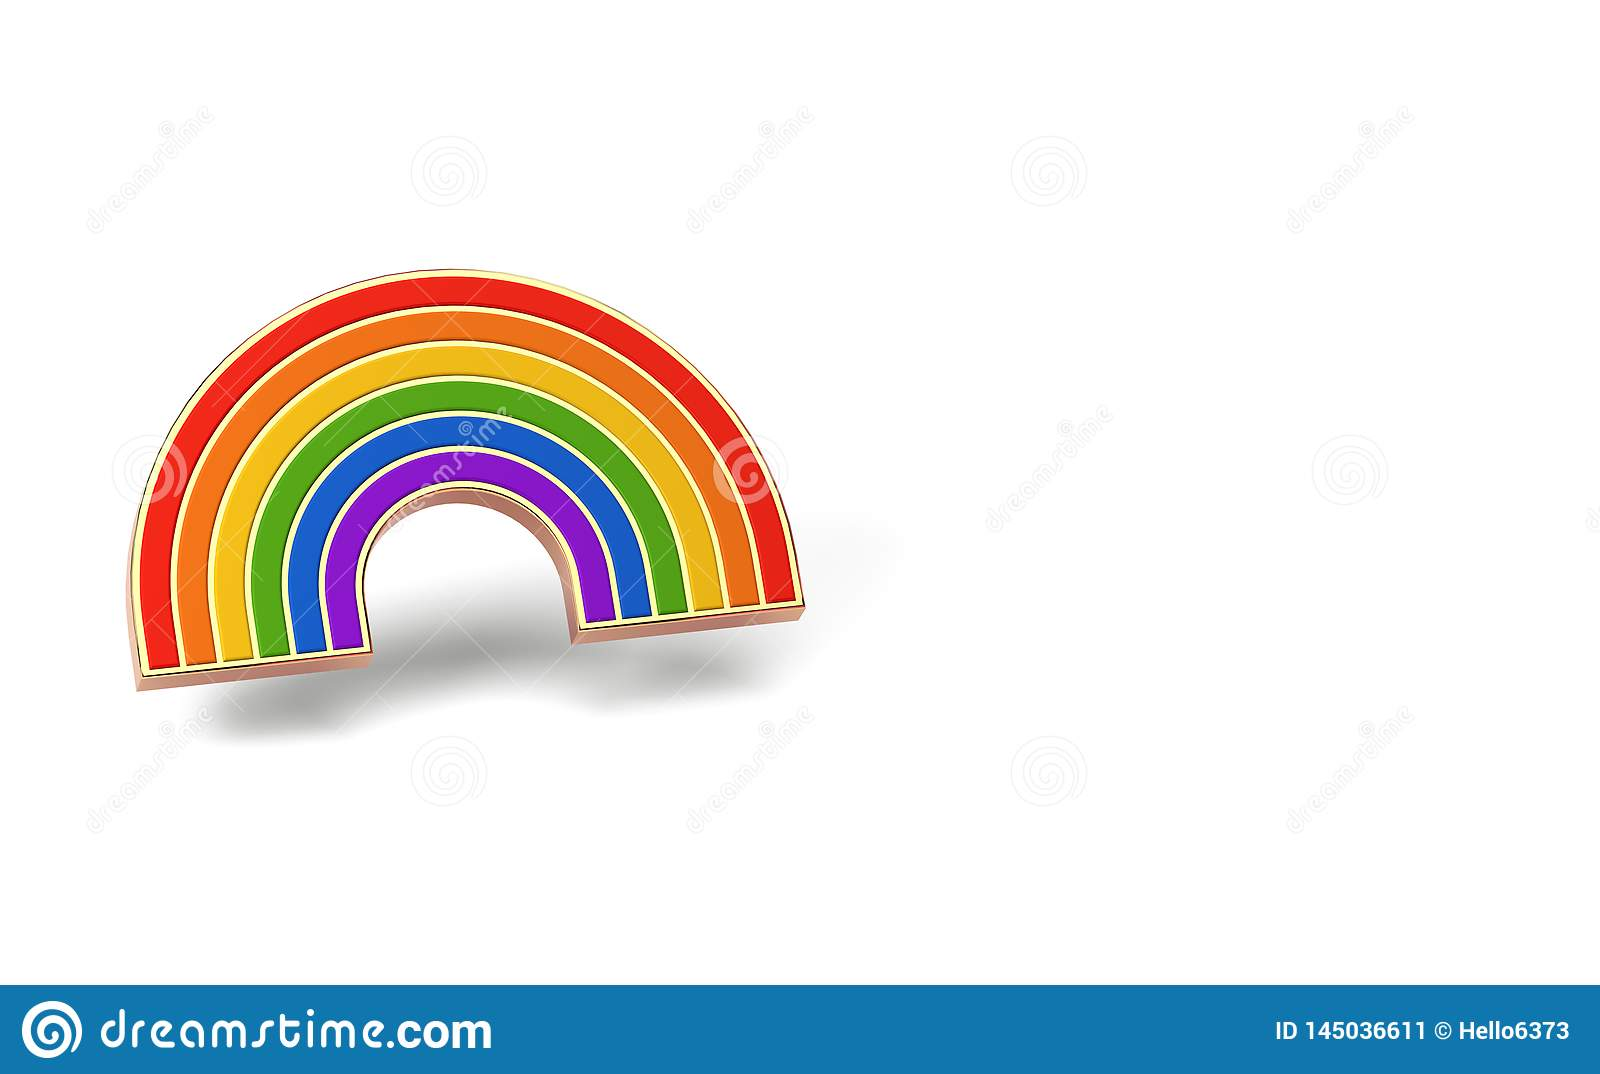 Gay pride rainbow isolated on white background. Copy space on the left side. LGBTQ and homosexual minority pride symbol concept.